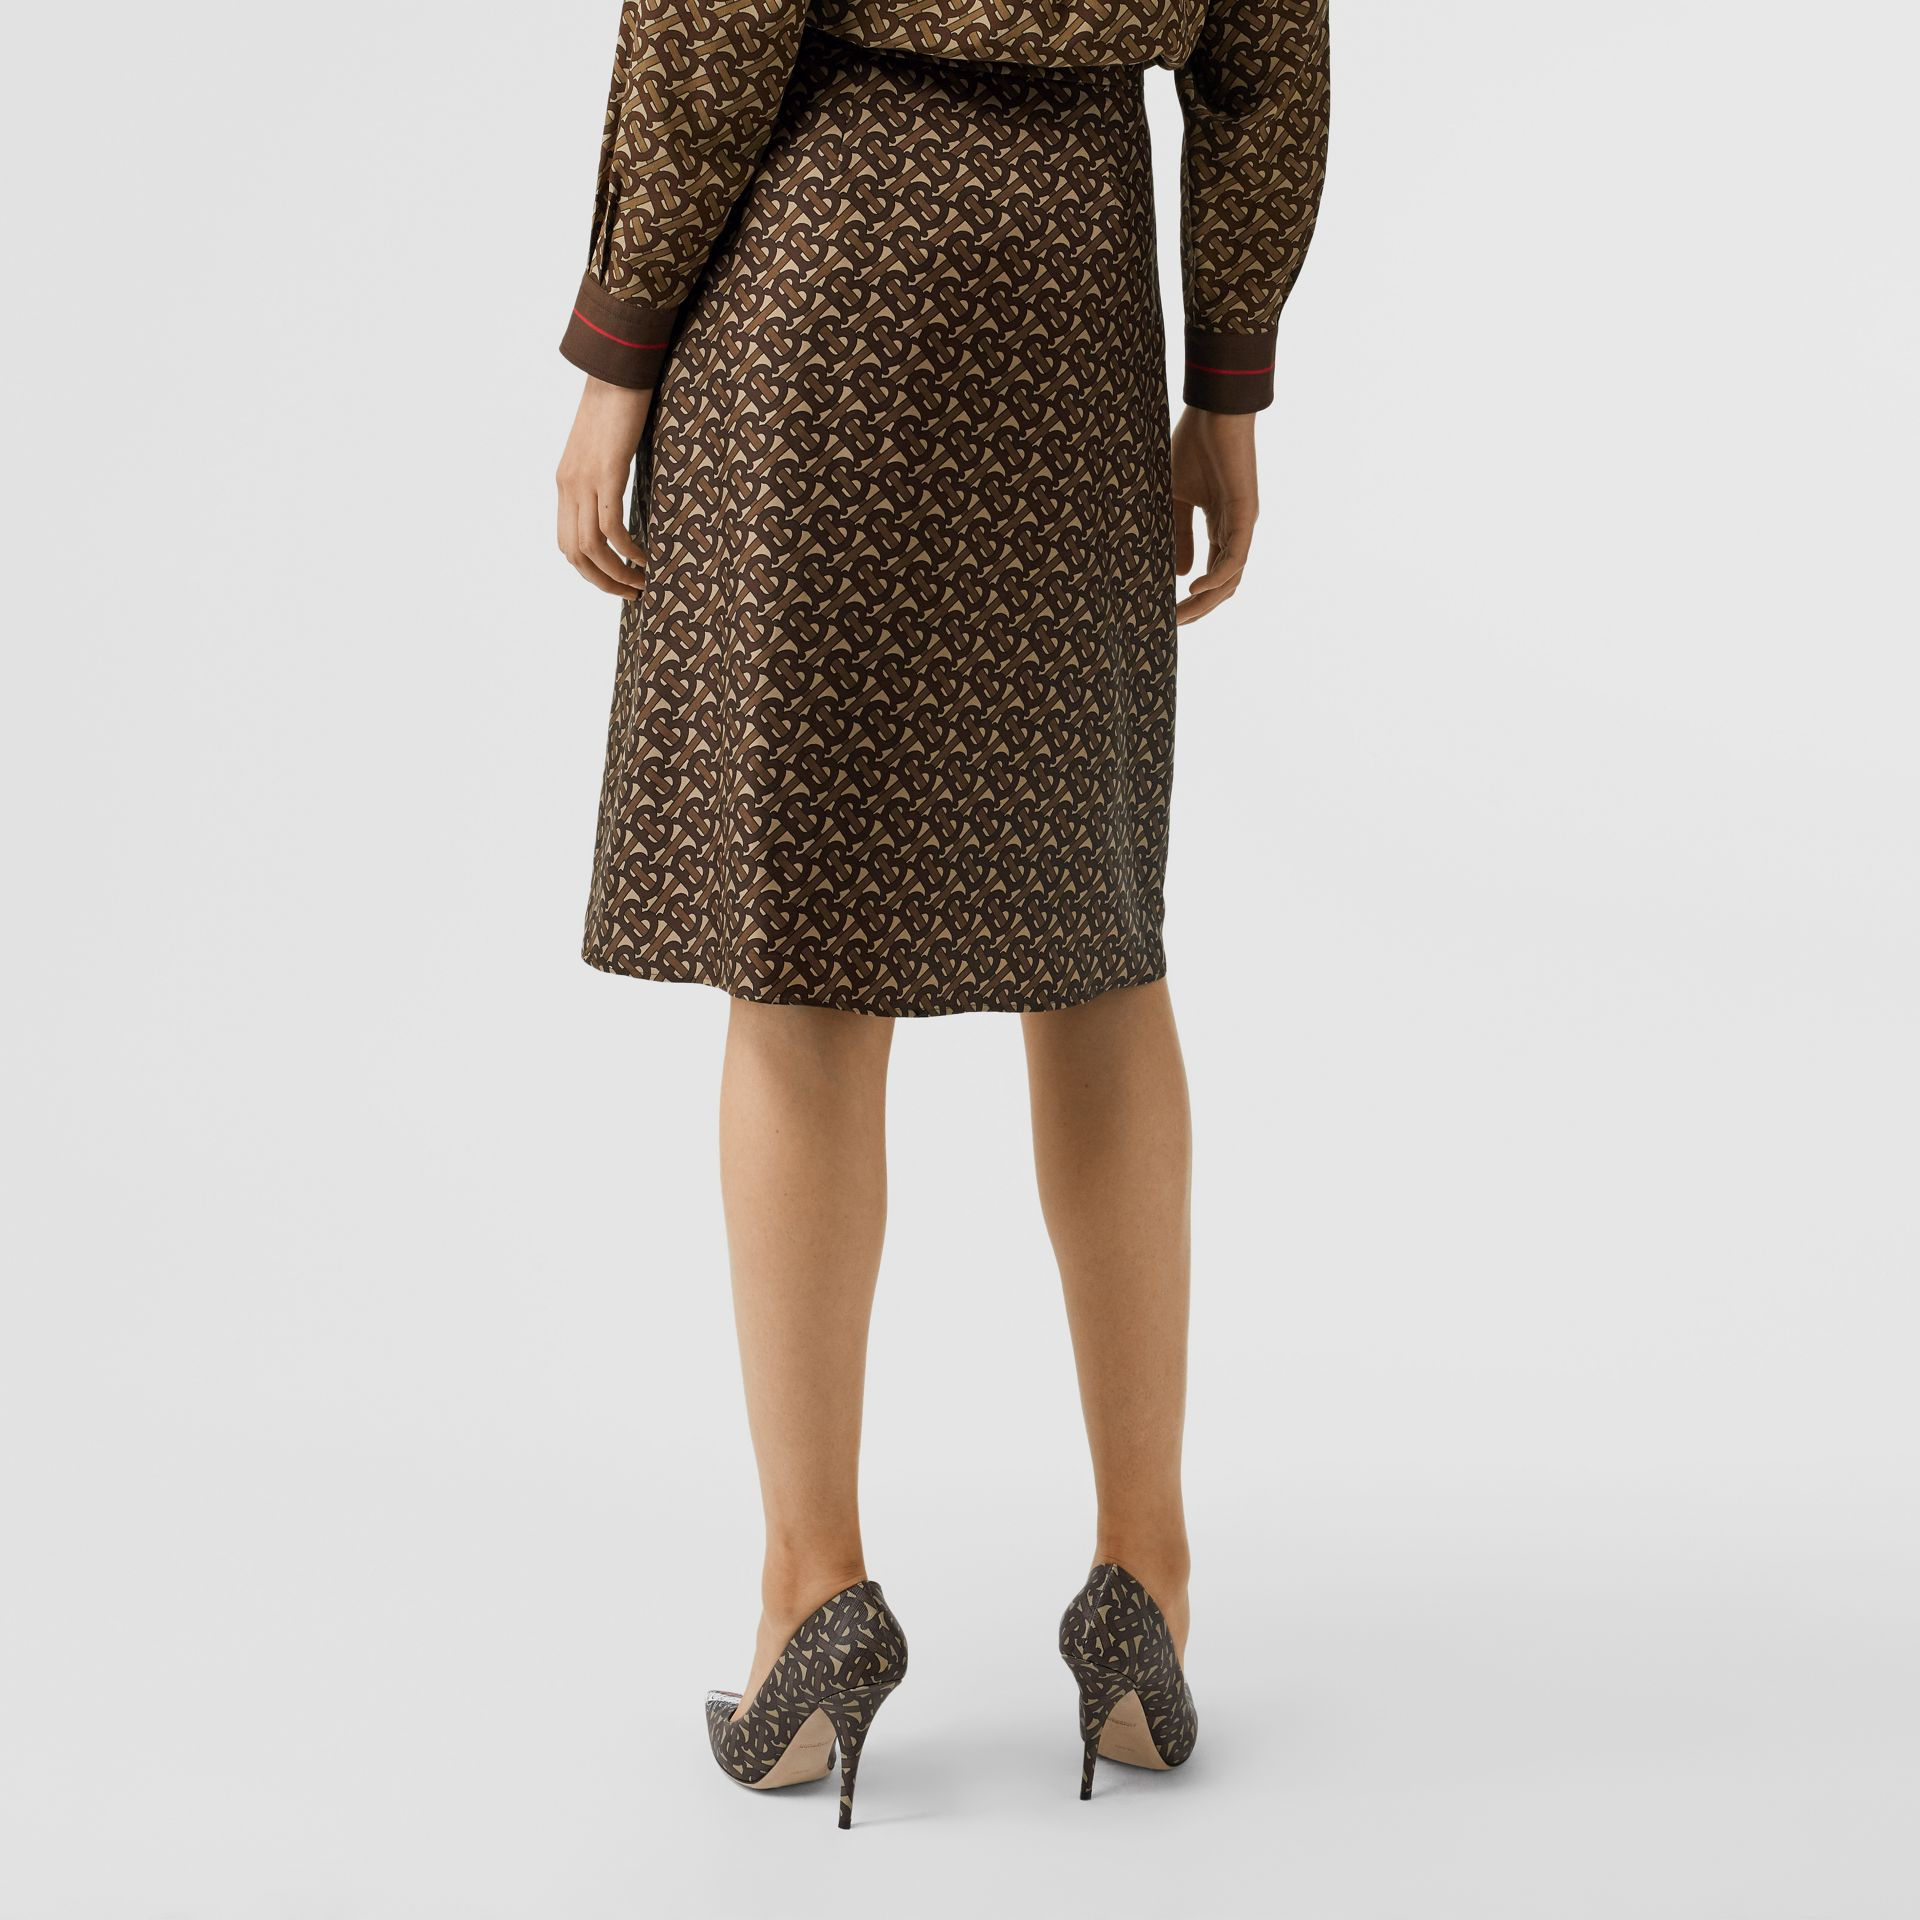 Monogram Stripe Print Silk Skirt in Bridle Brown - Women | Burberry United Kingdom - gallery image 2